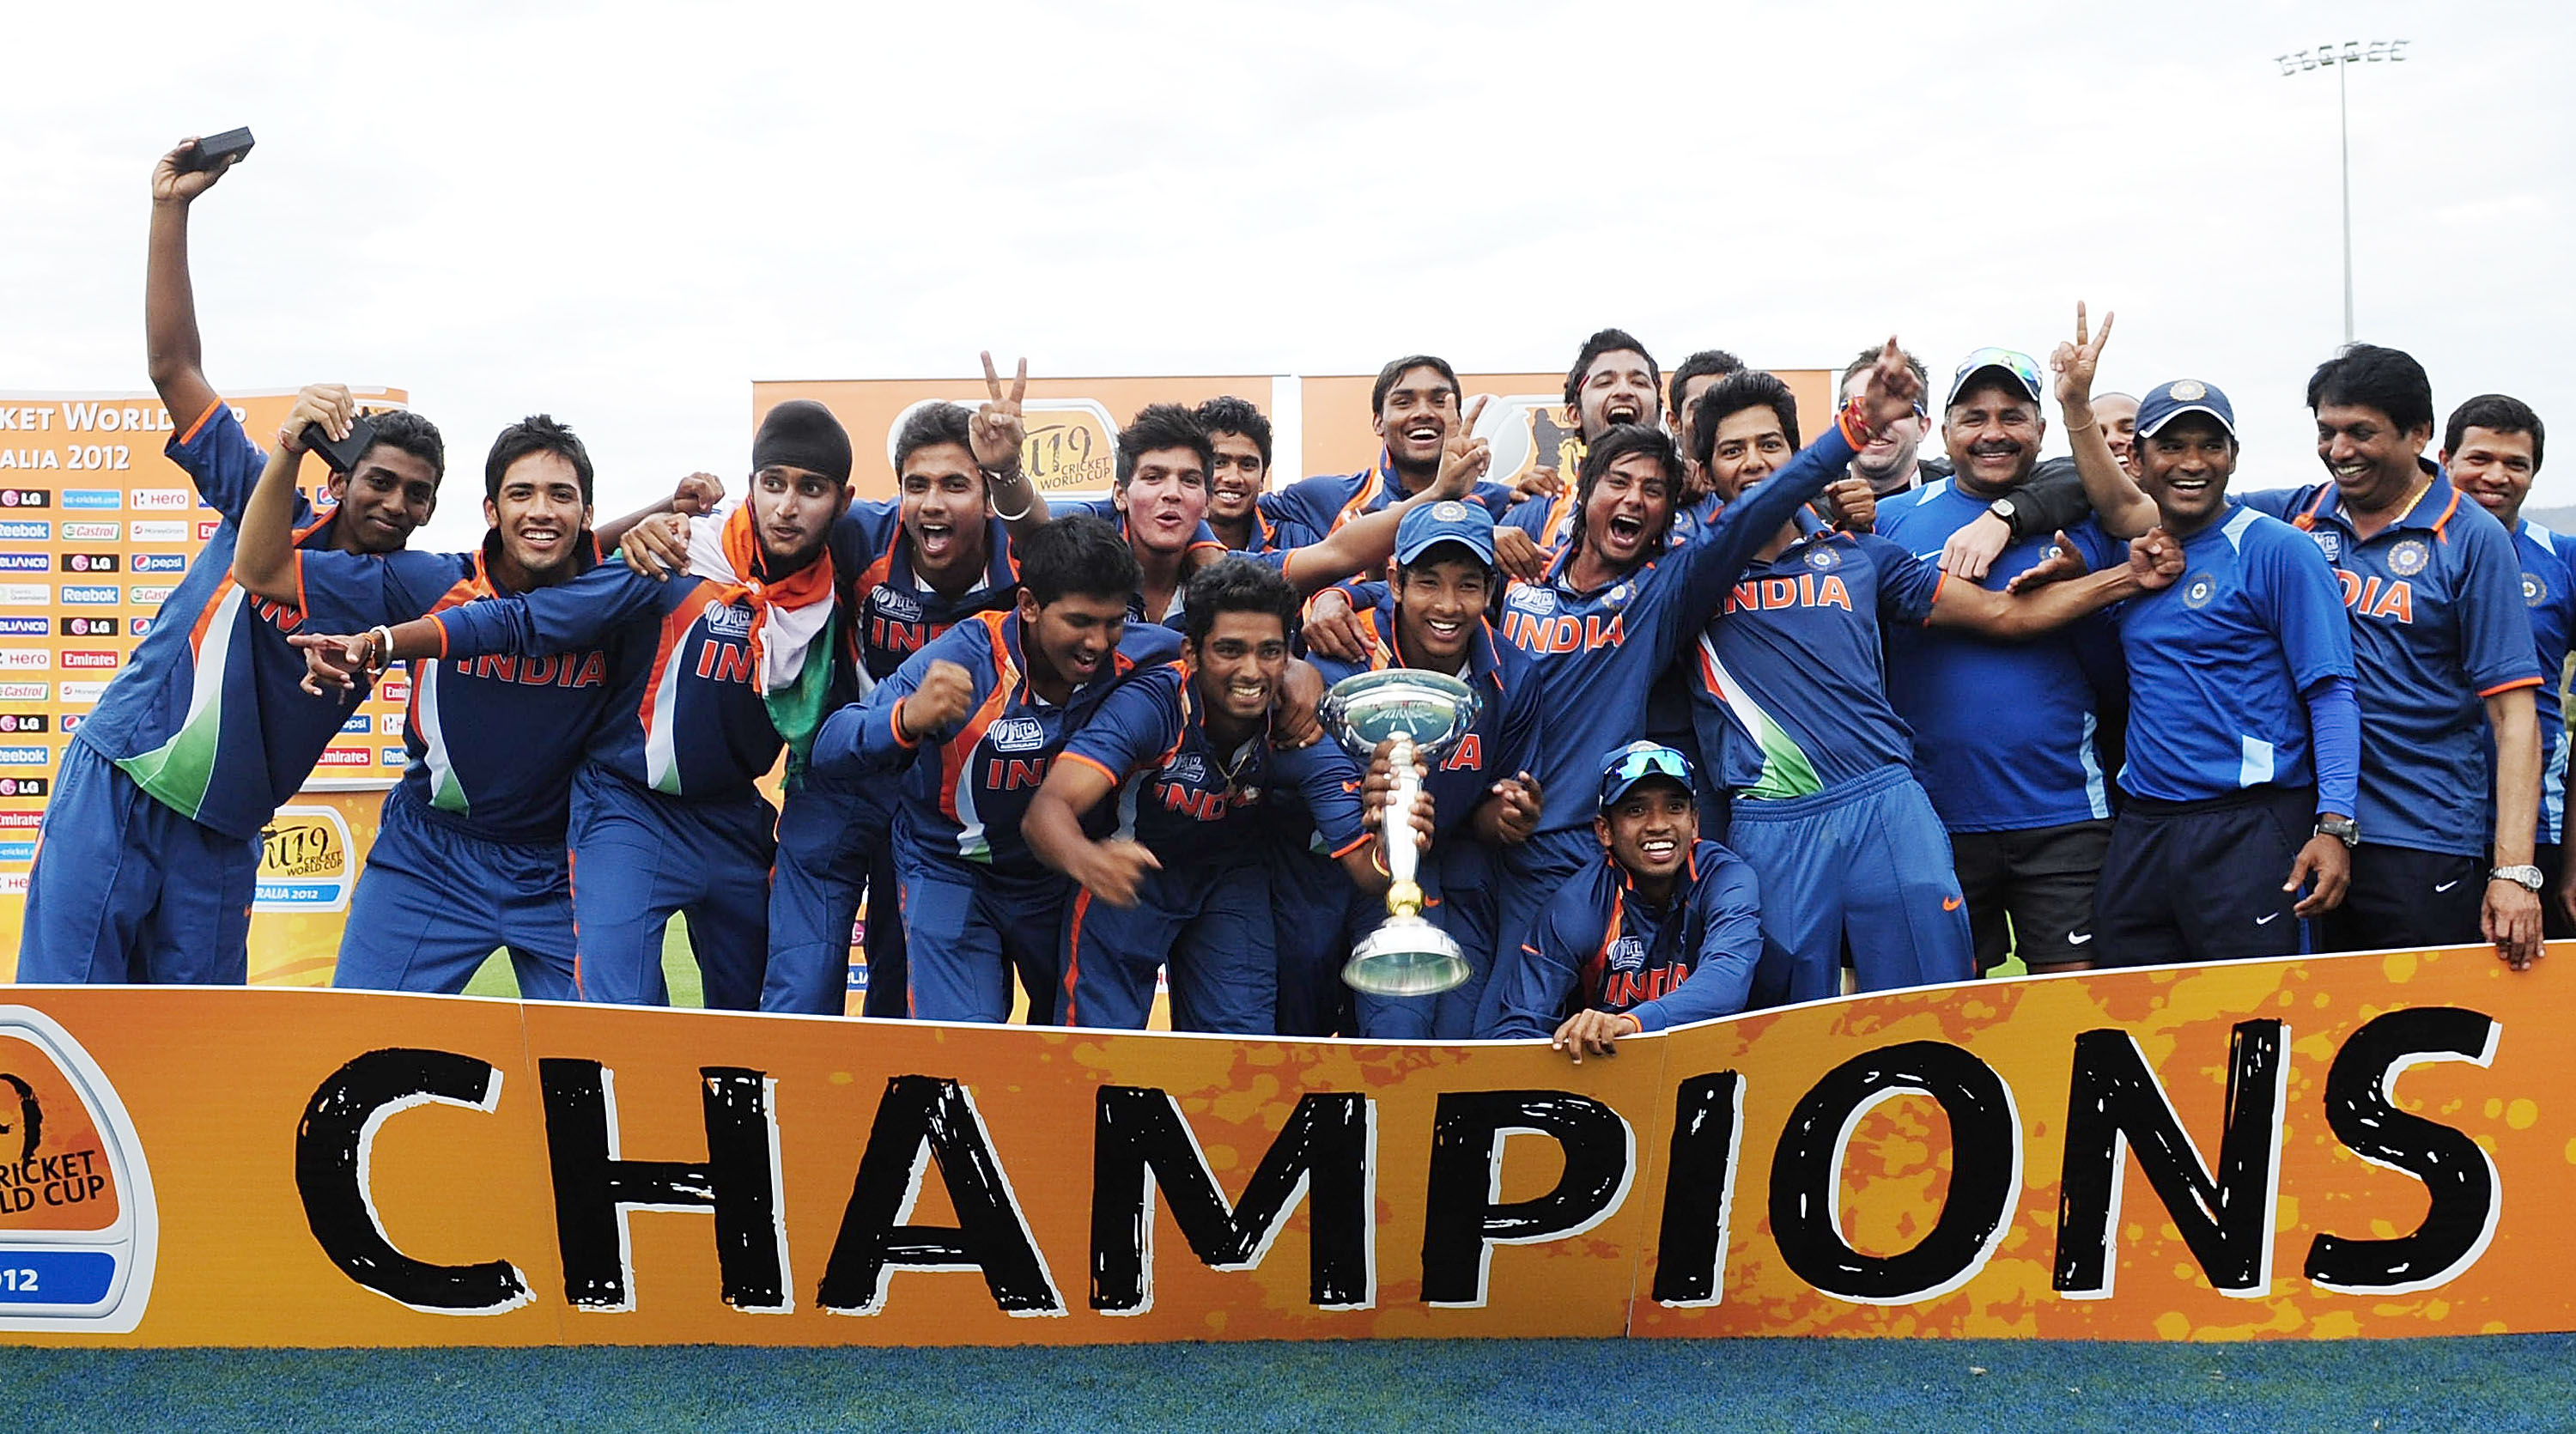 Chand inspires India to 3rd ICC U19 World title